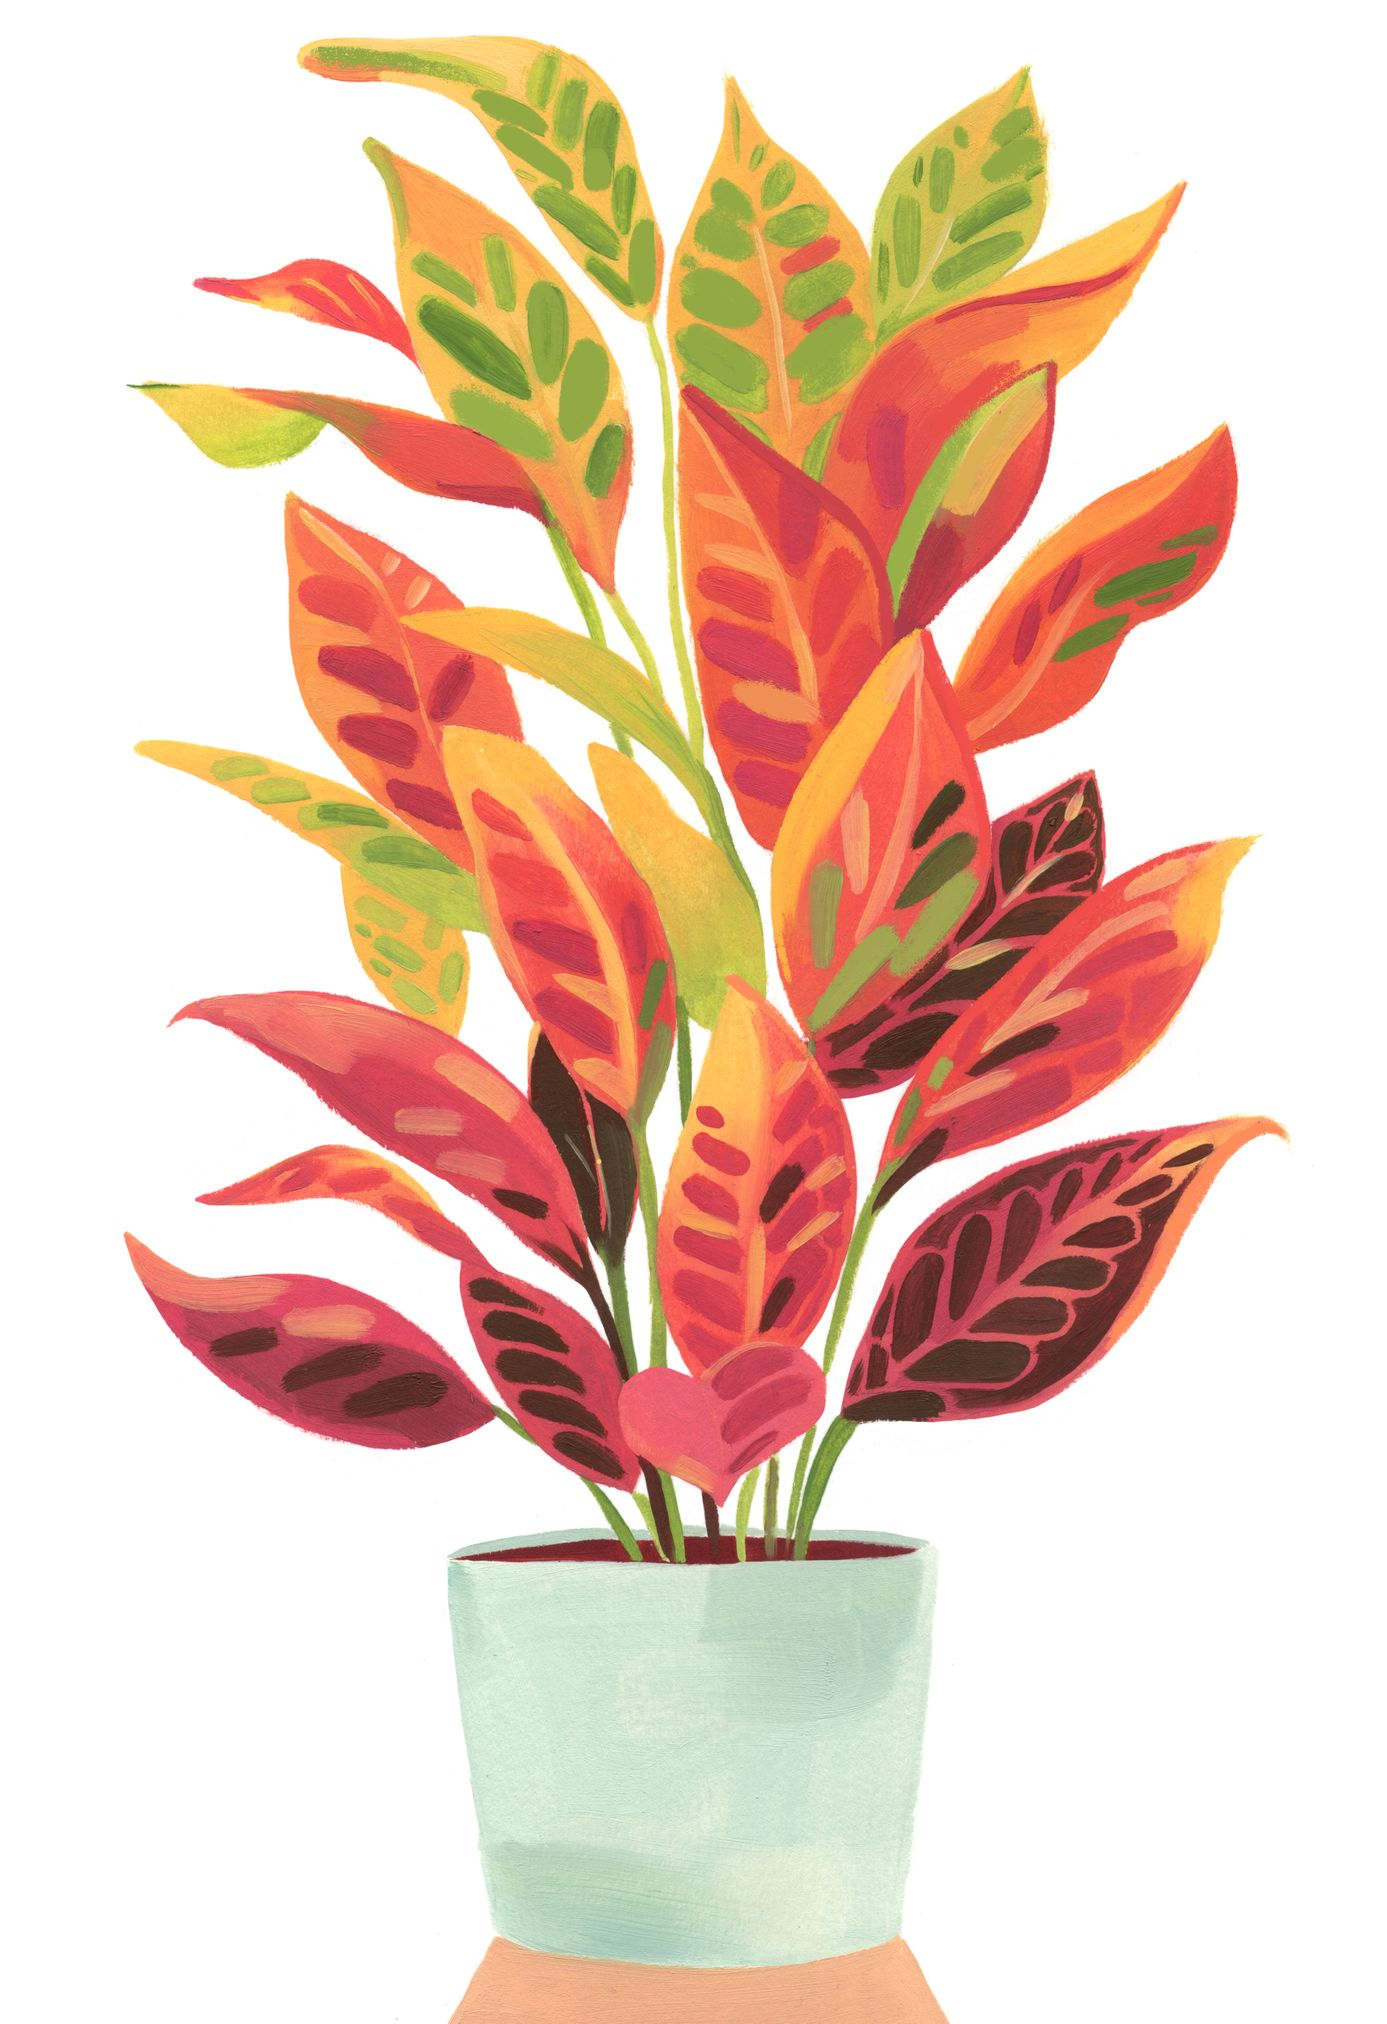 Garance-Illustration-Grace-Helmer-Plantfulness-Croton